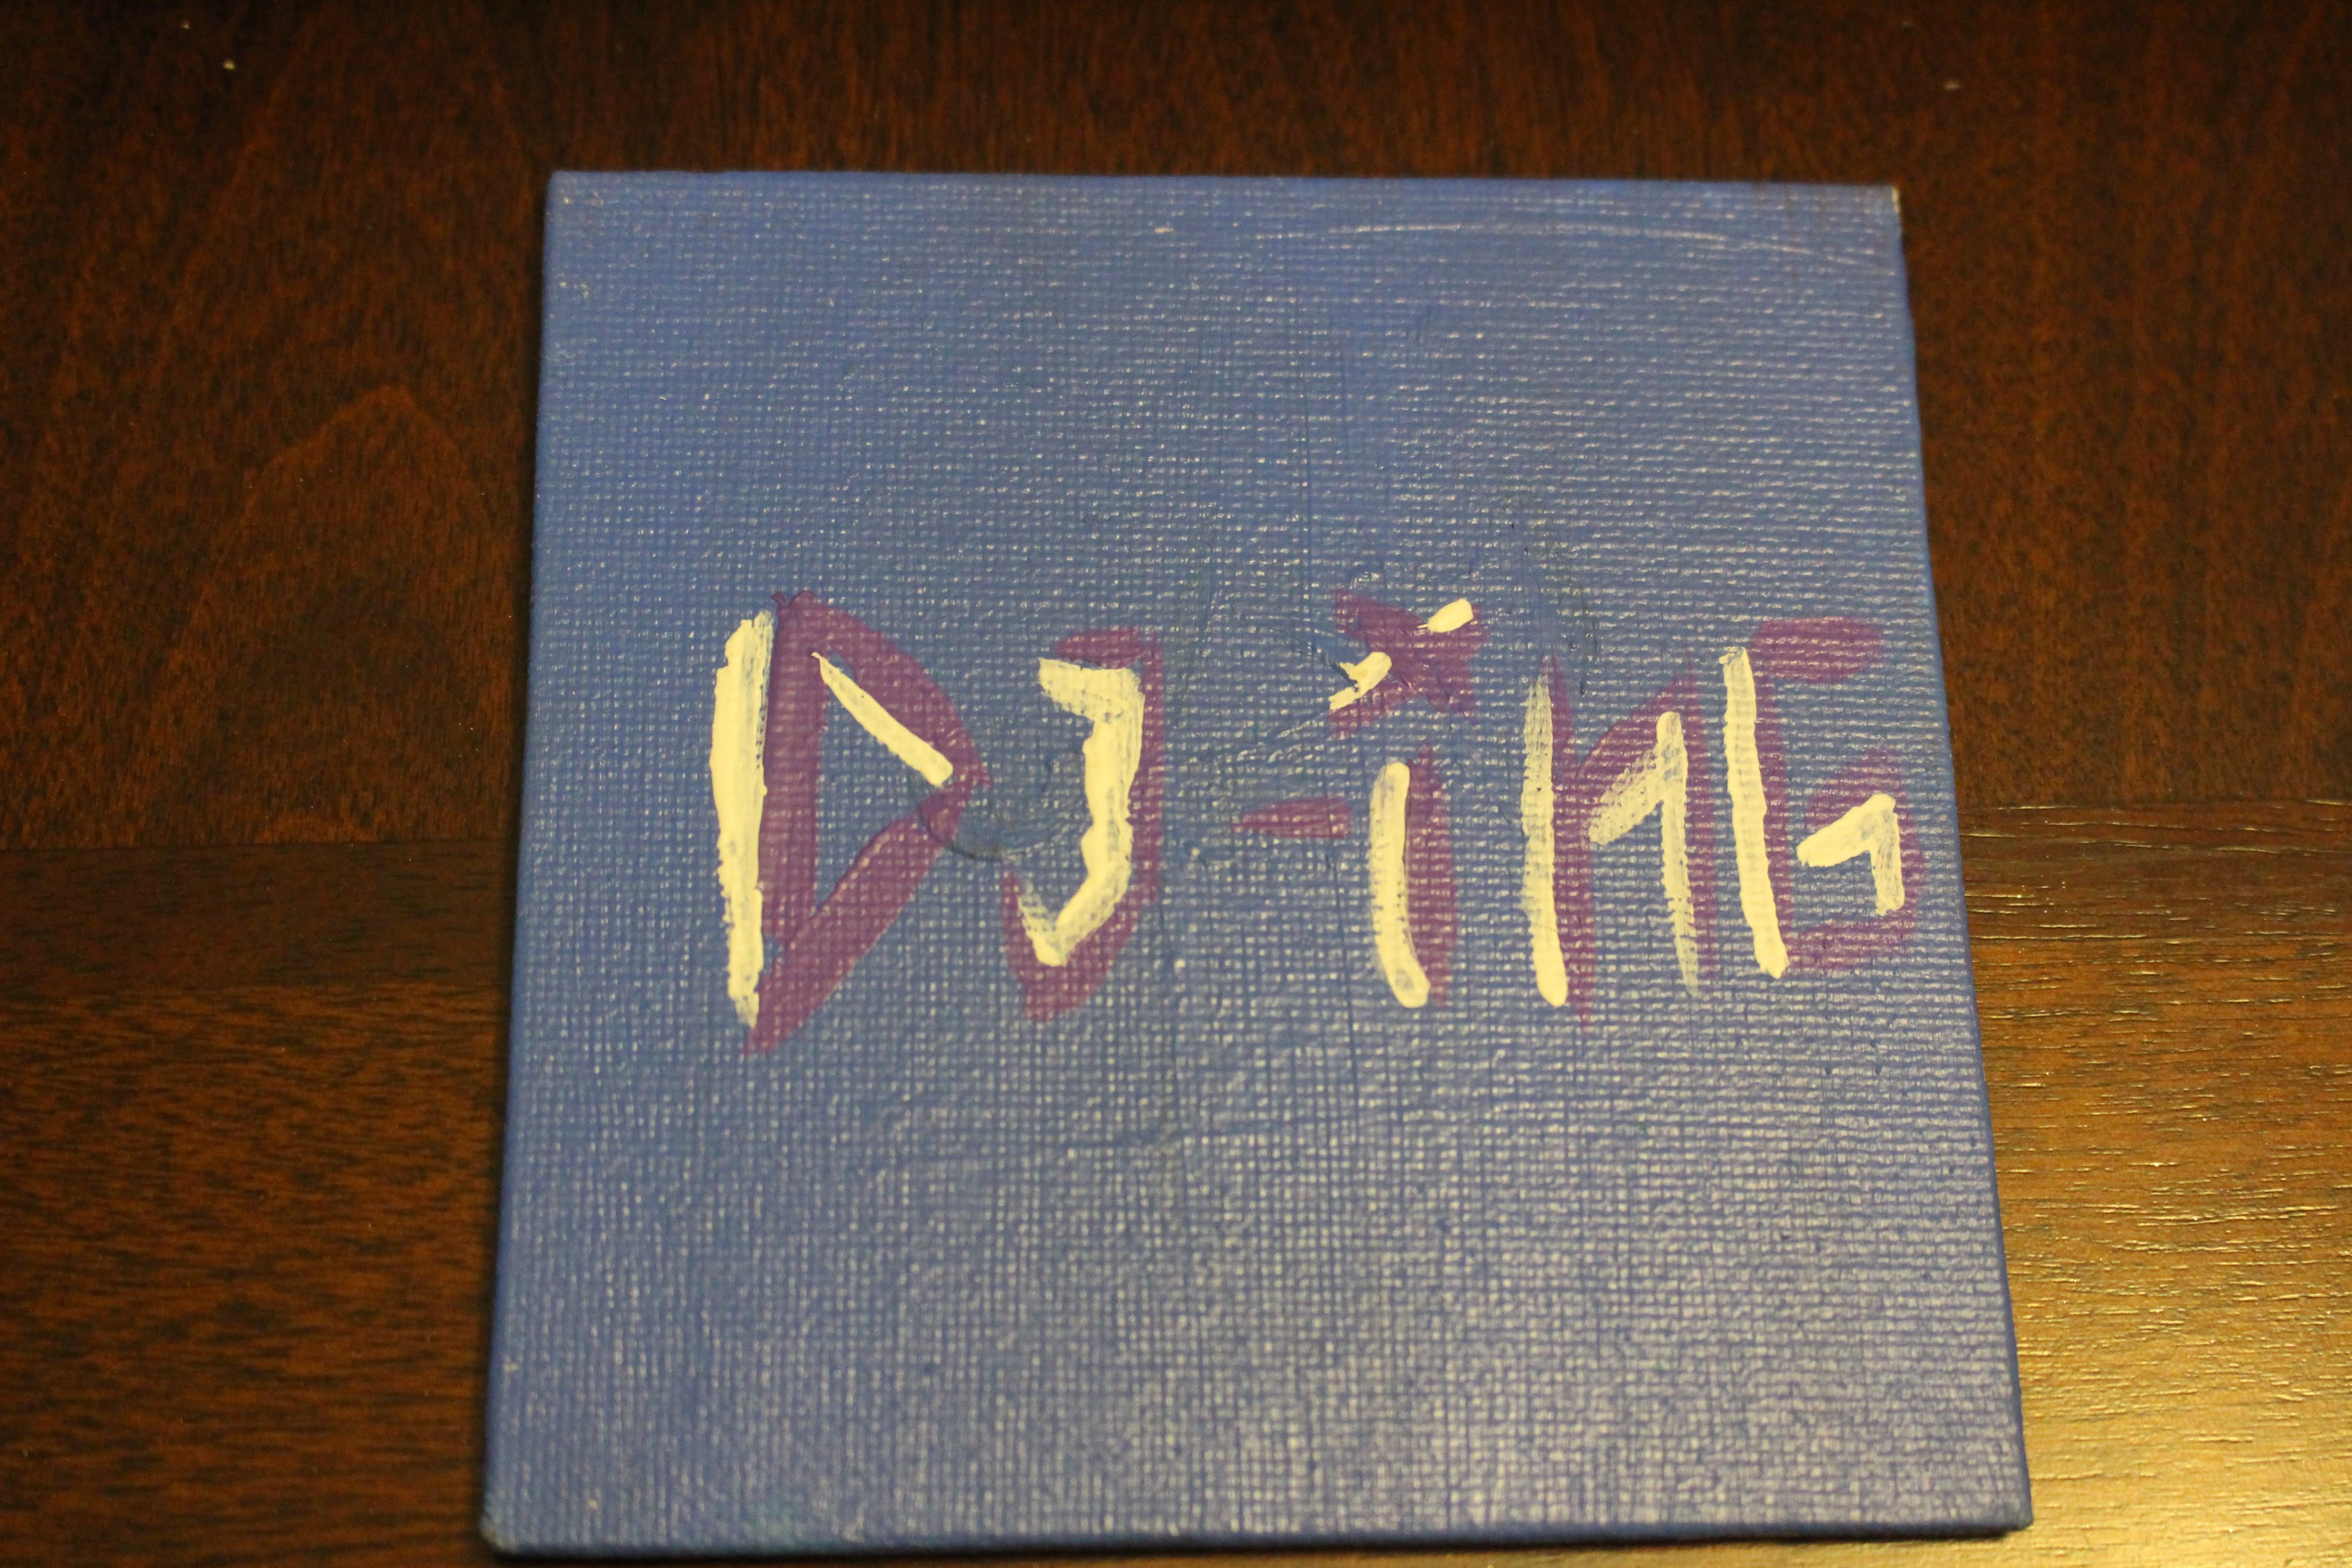 "This is a painting of the word 'dj-ing' on a mini canvas. This word represents one of the 'four elements of hip hop""."